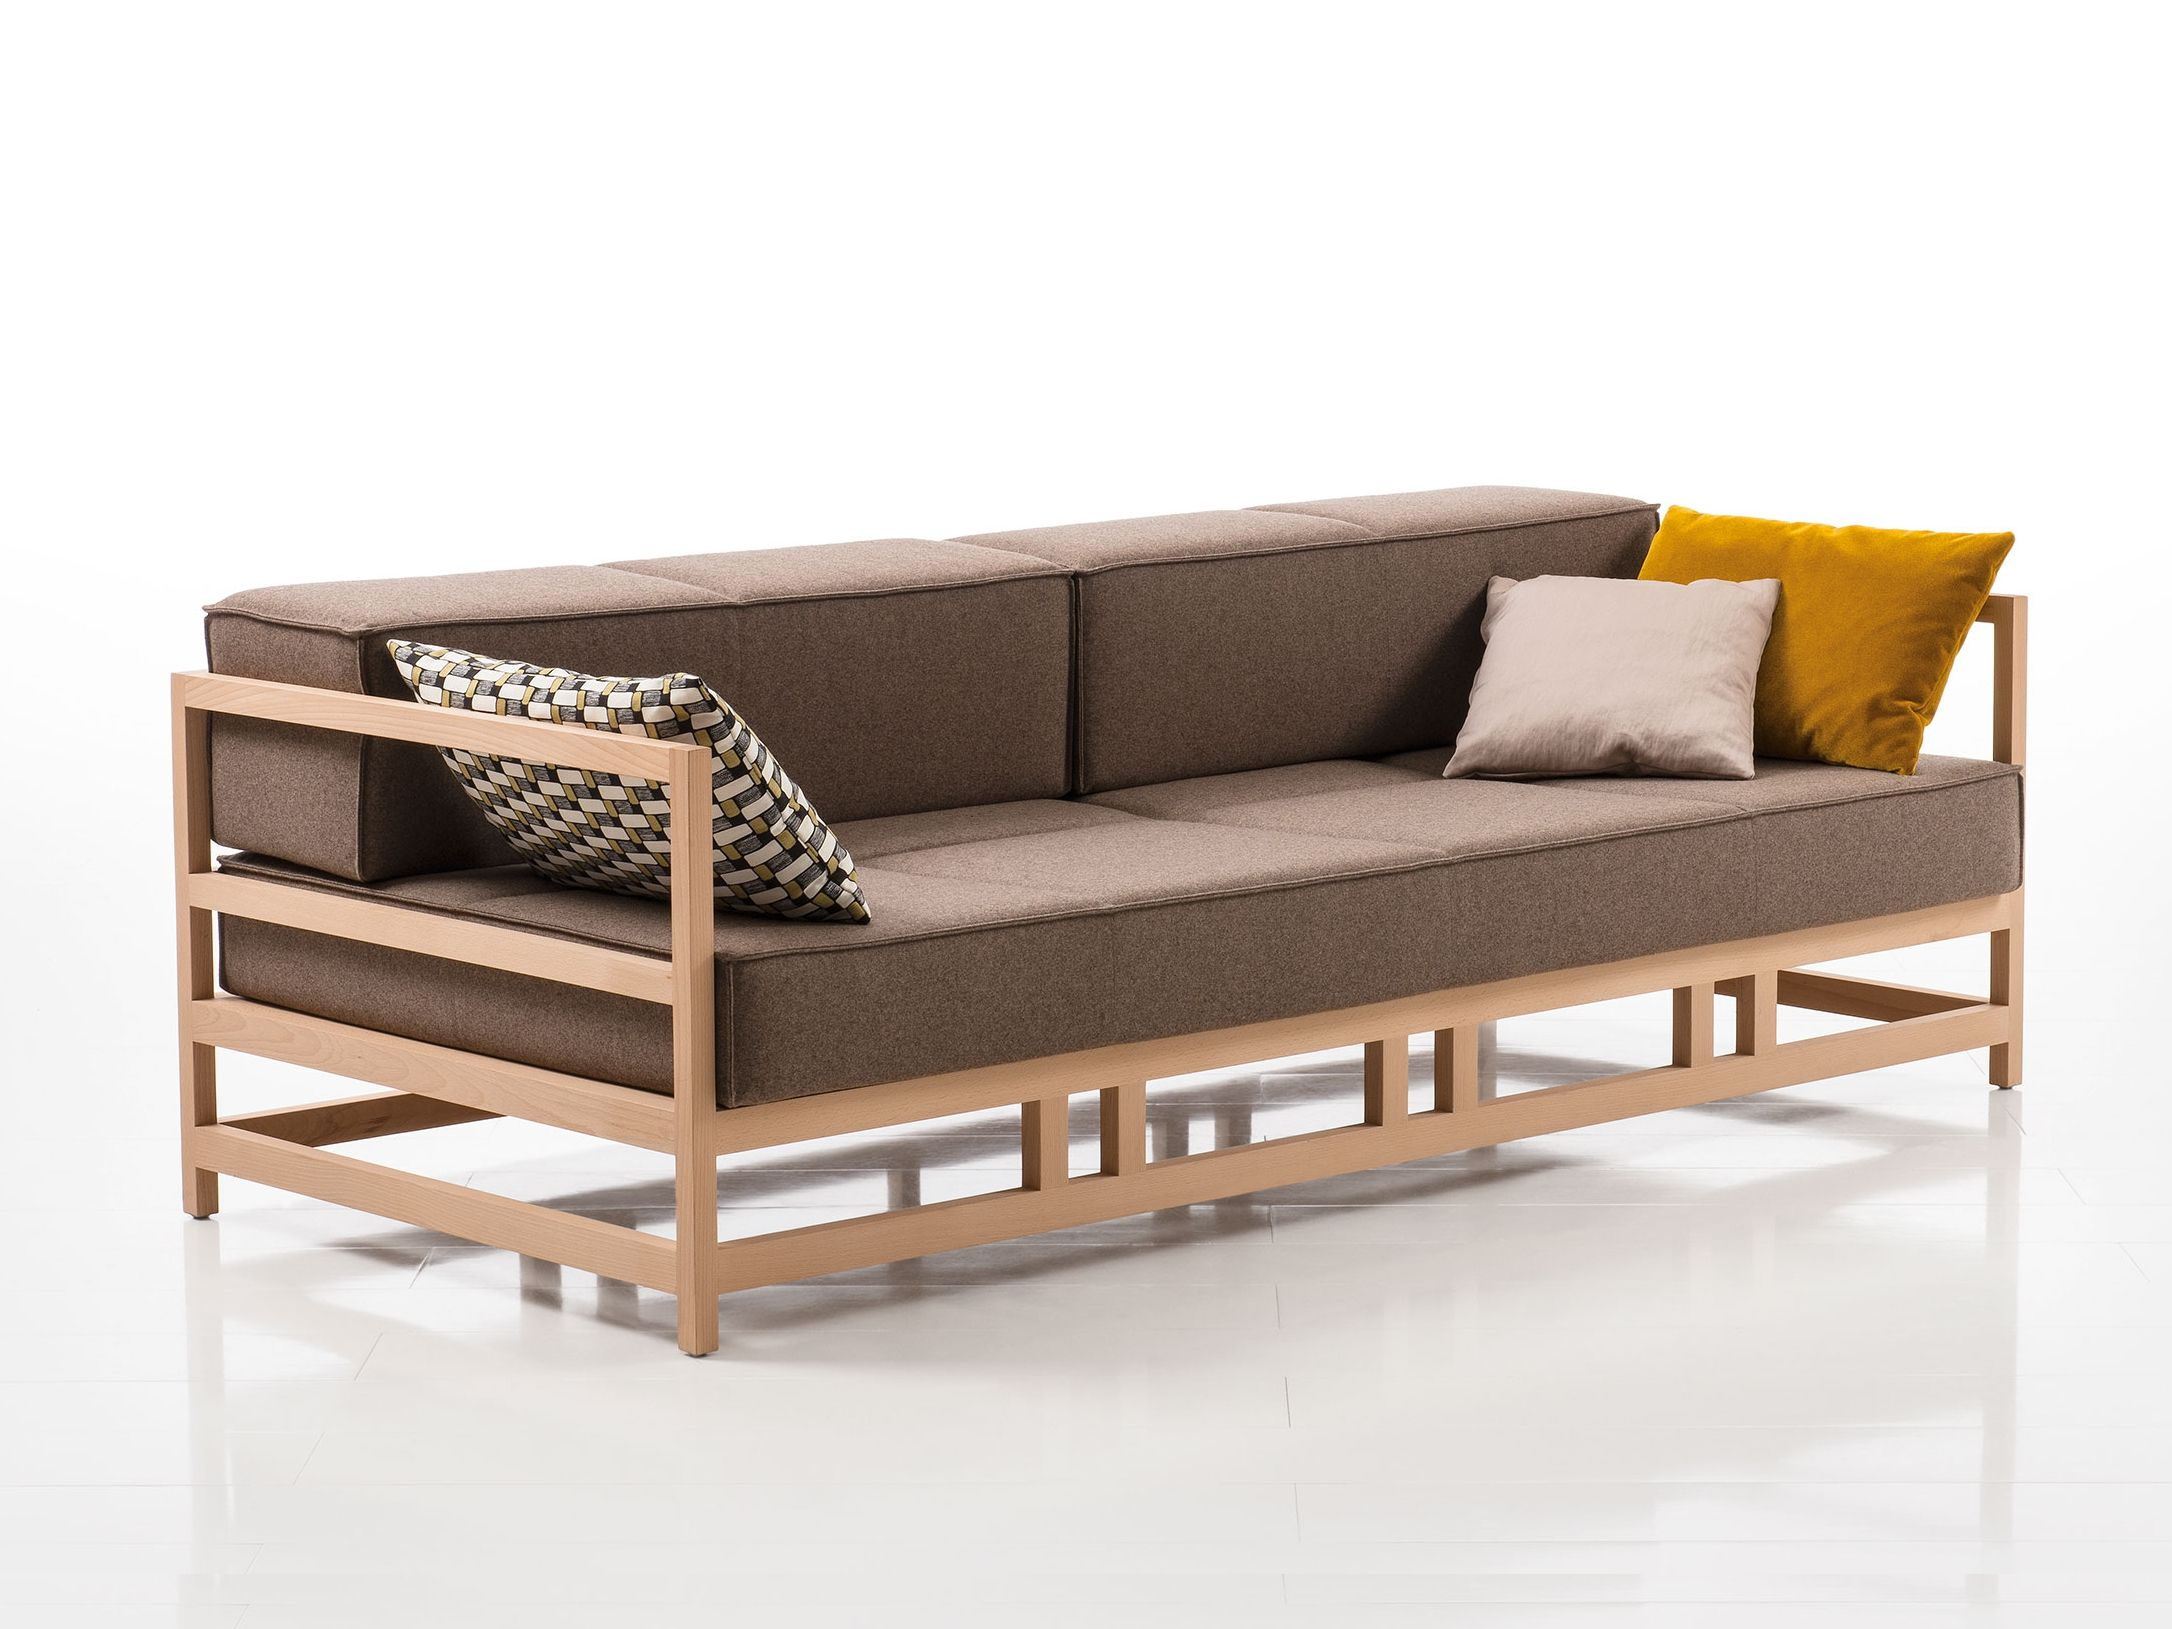 Fabric Sofa Easy Pieces Fabric Sofa Easy Pieces Collection By Bruhl Design Kati Meyer Bruhl Furniture Fabric Sofa Design Sofa Furniture